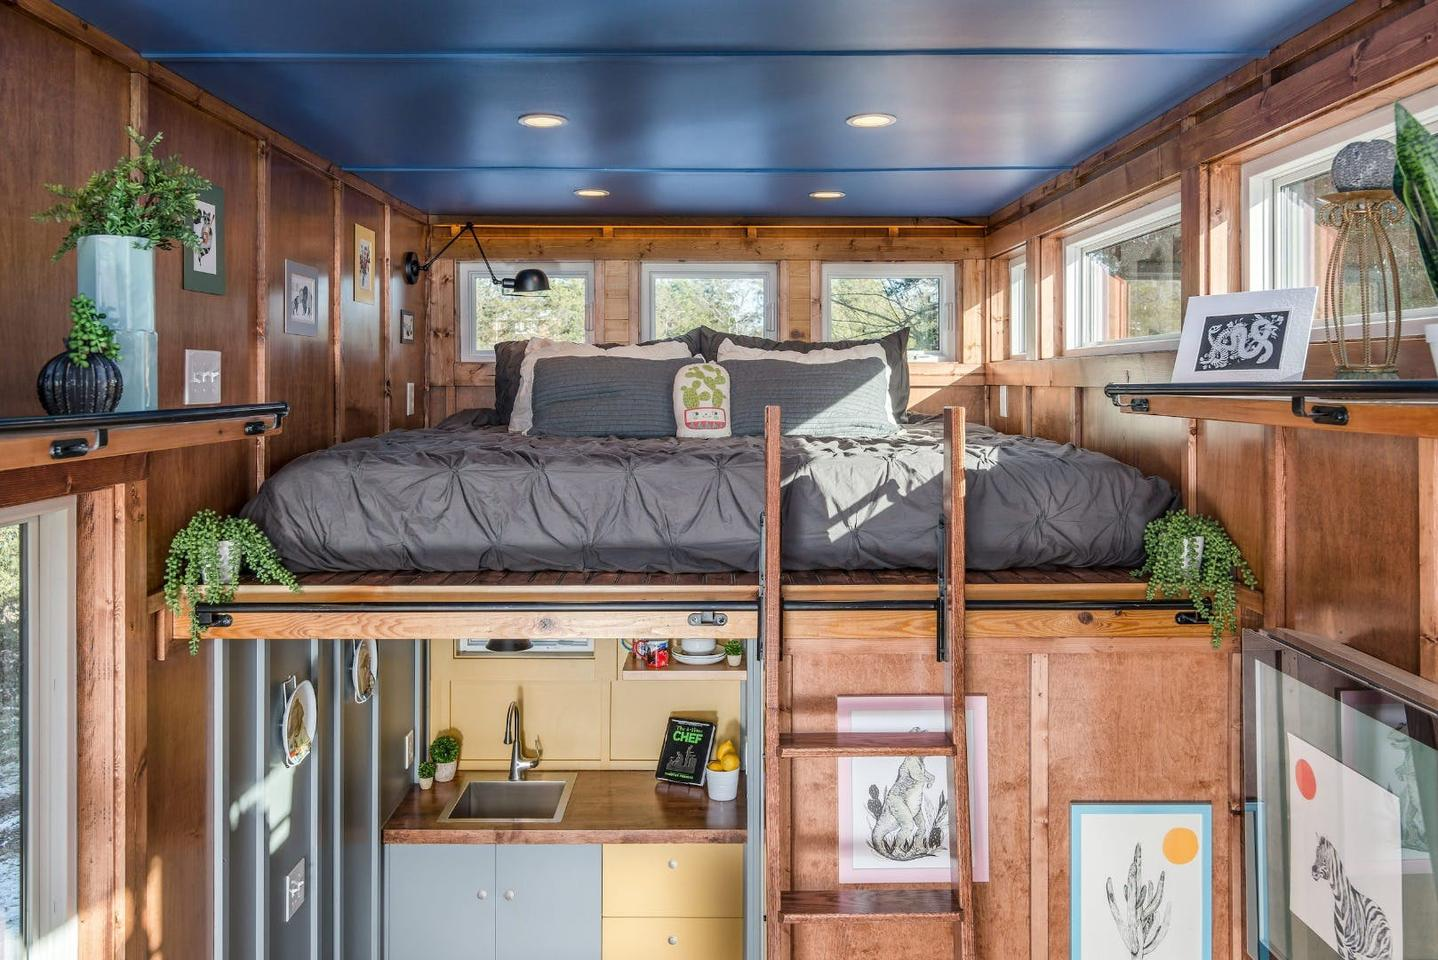 The Cornelia Tiny House, by New Frontier Tiny Homes